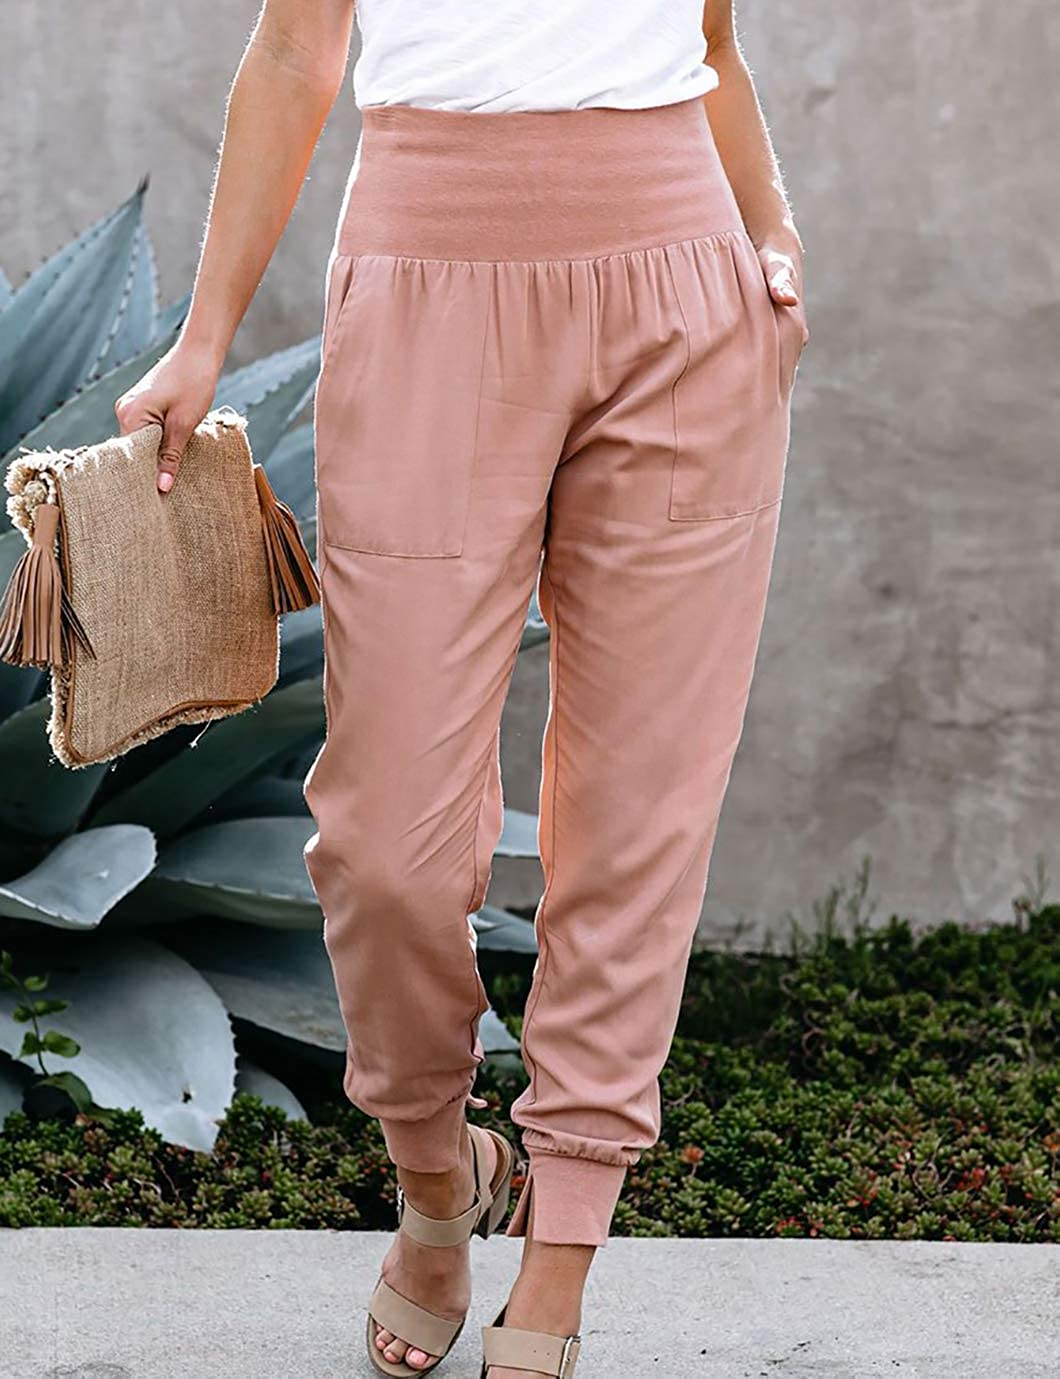 Eddoyee Women Fashion High Waist Pants Casual Solid Color Loose Jogger Trouser with Pockets